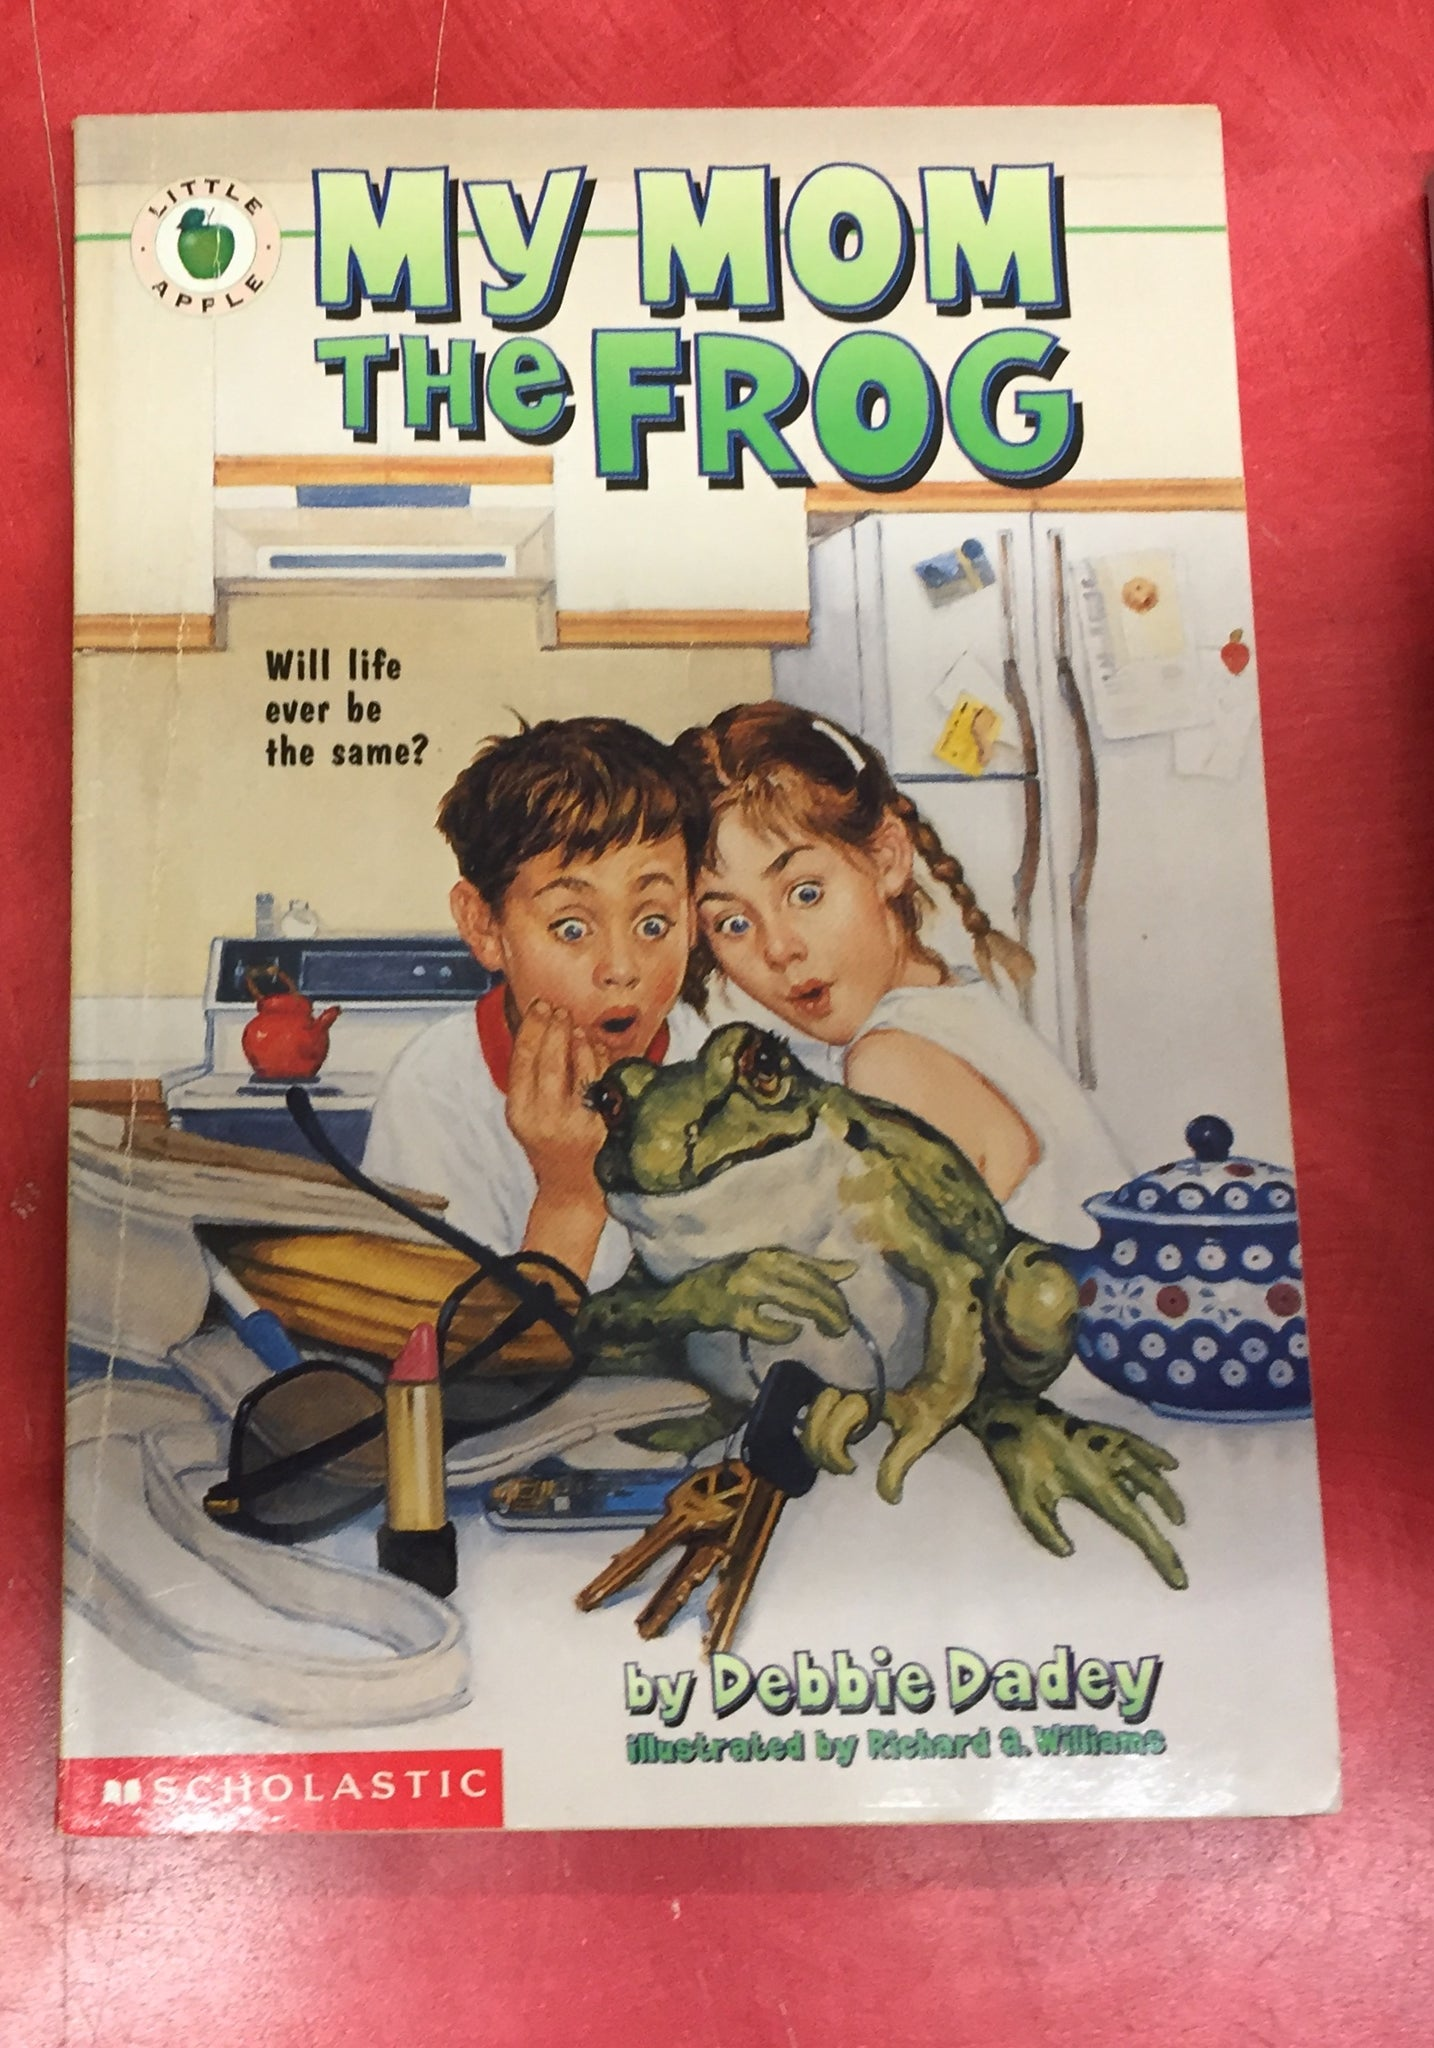 My mom the frog Debbie Dadey